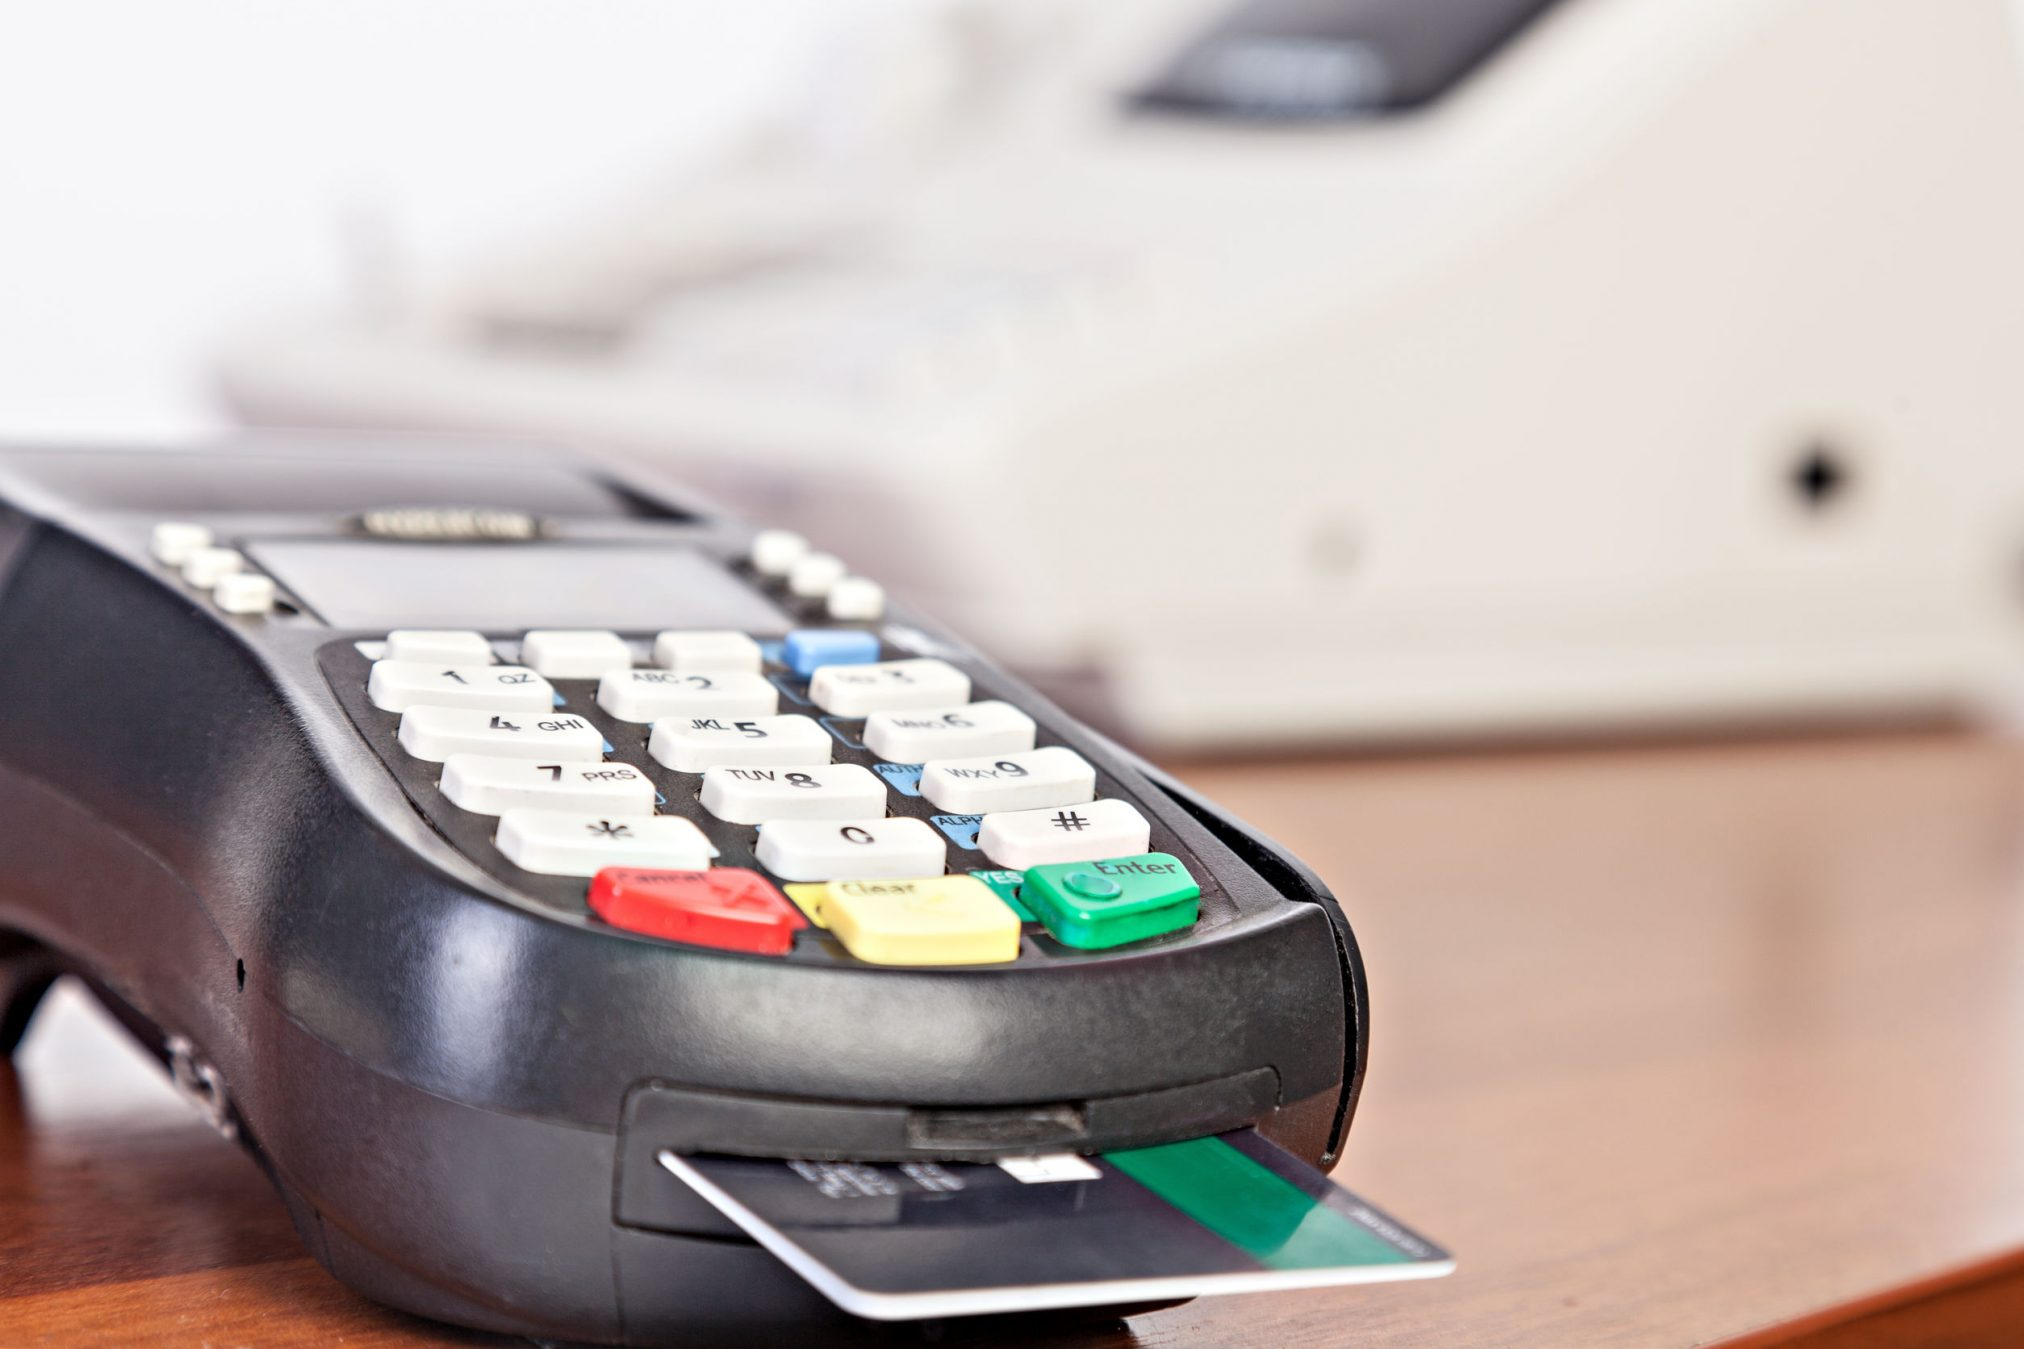 eftpos machine with card stuck in it